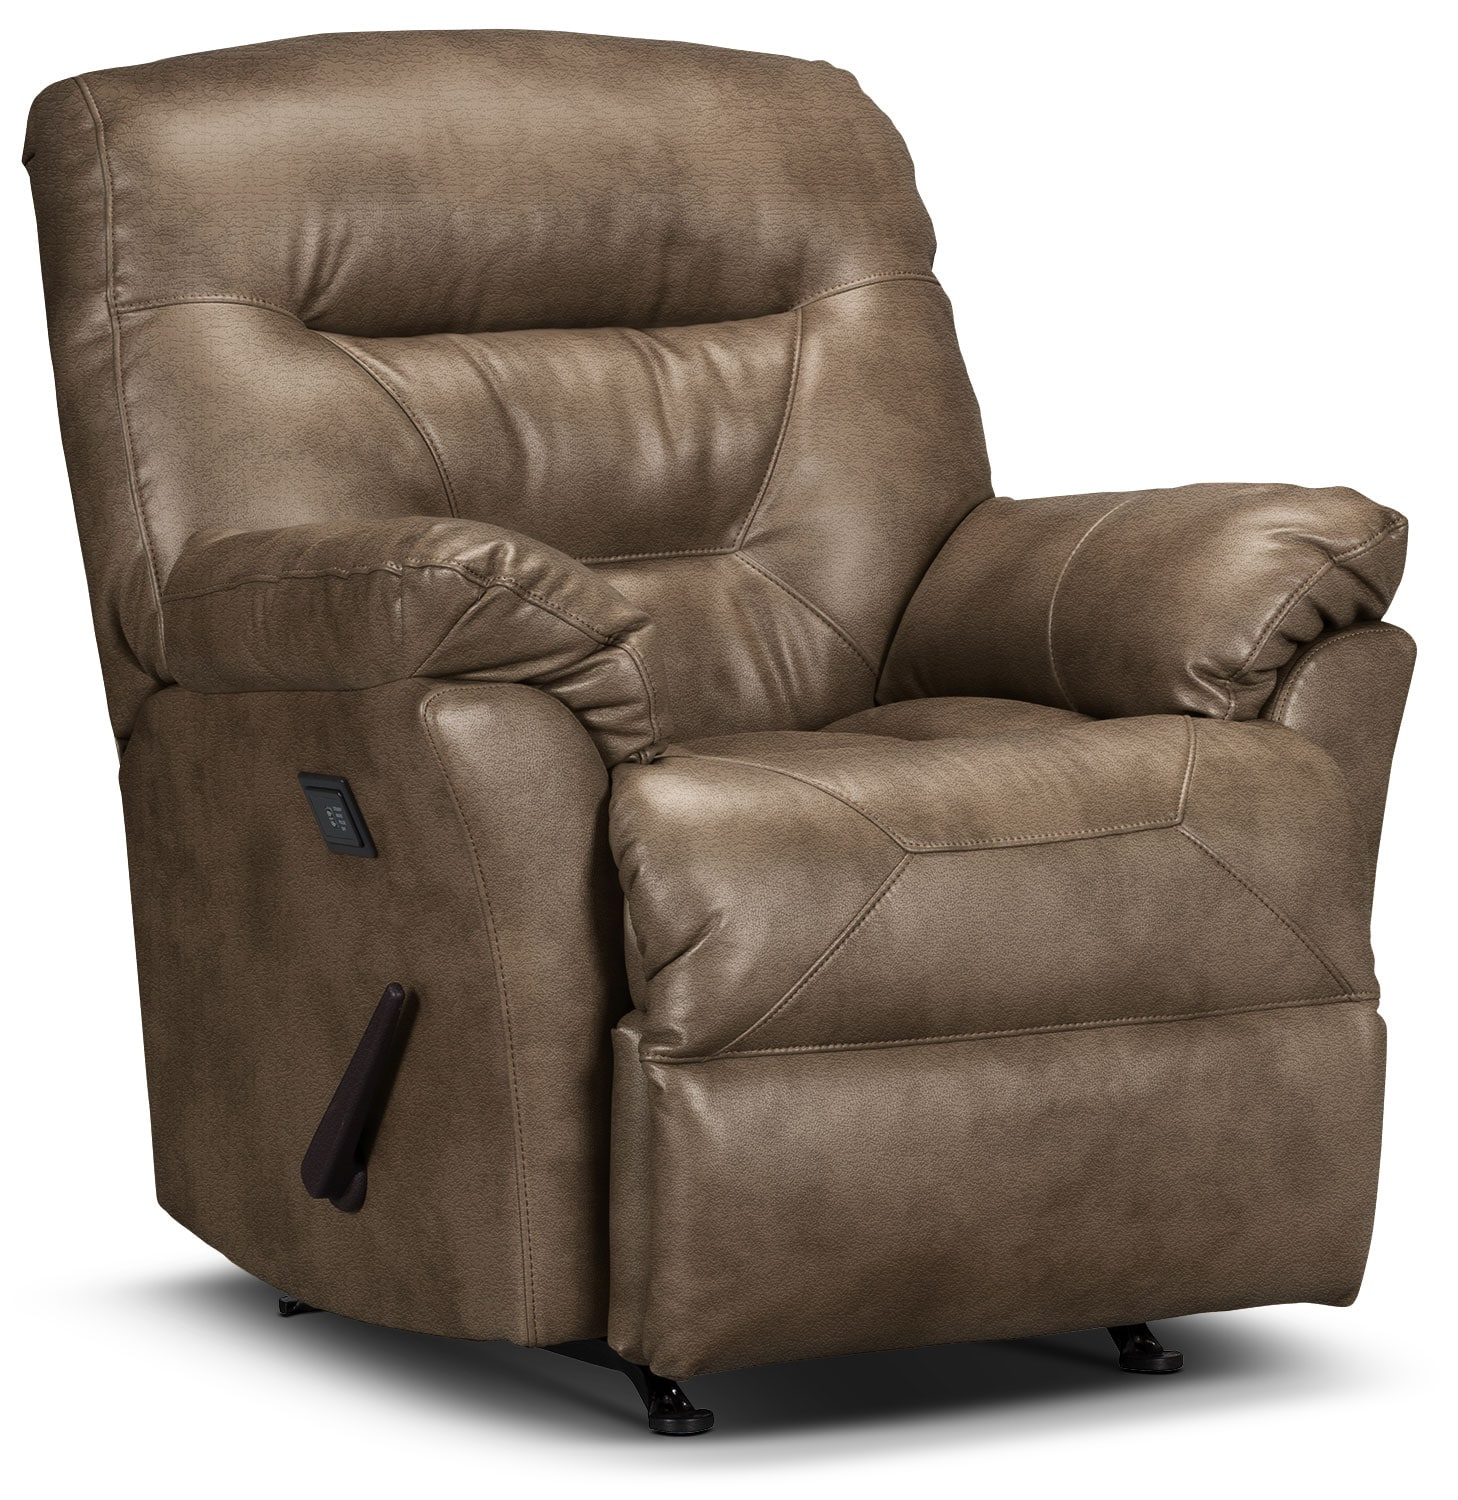 Living Room Furniture - Designed2B Recliner 4579 Leather-Look Fabric Massage Recliner - Tobacco